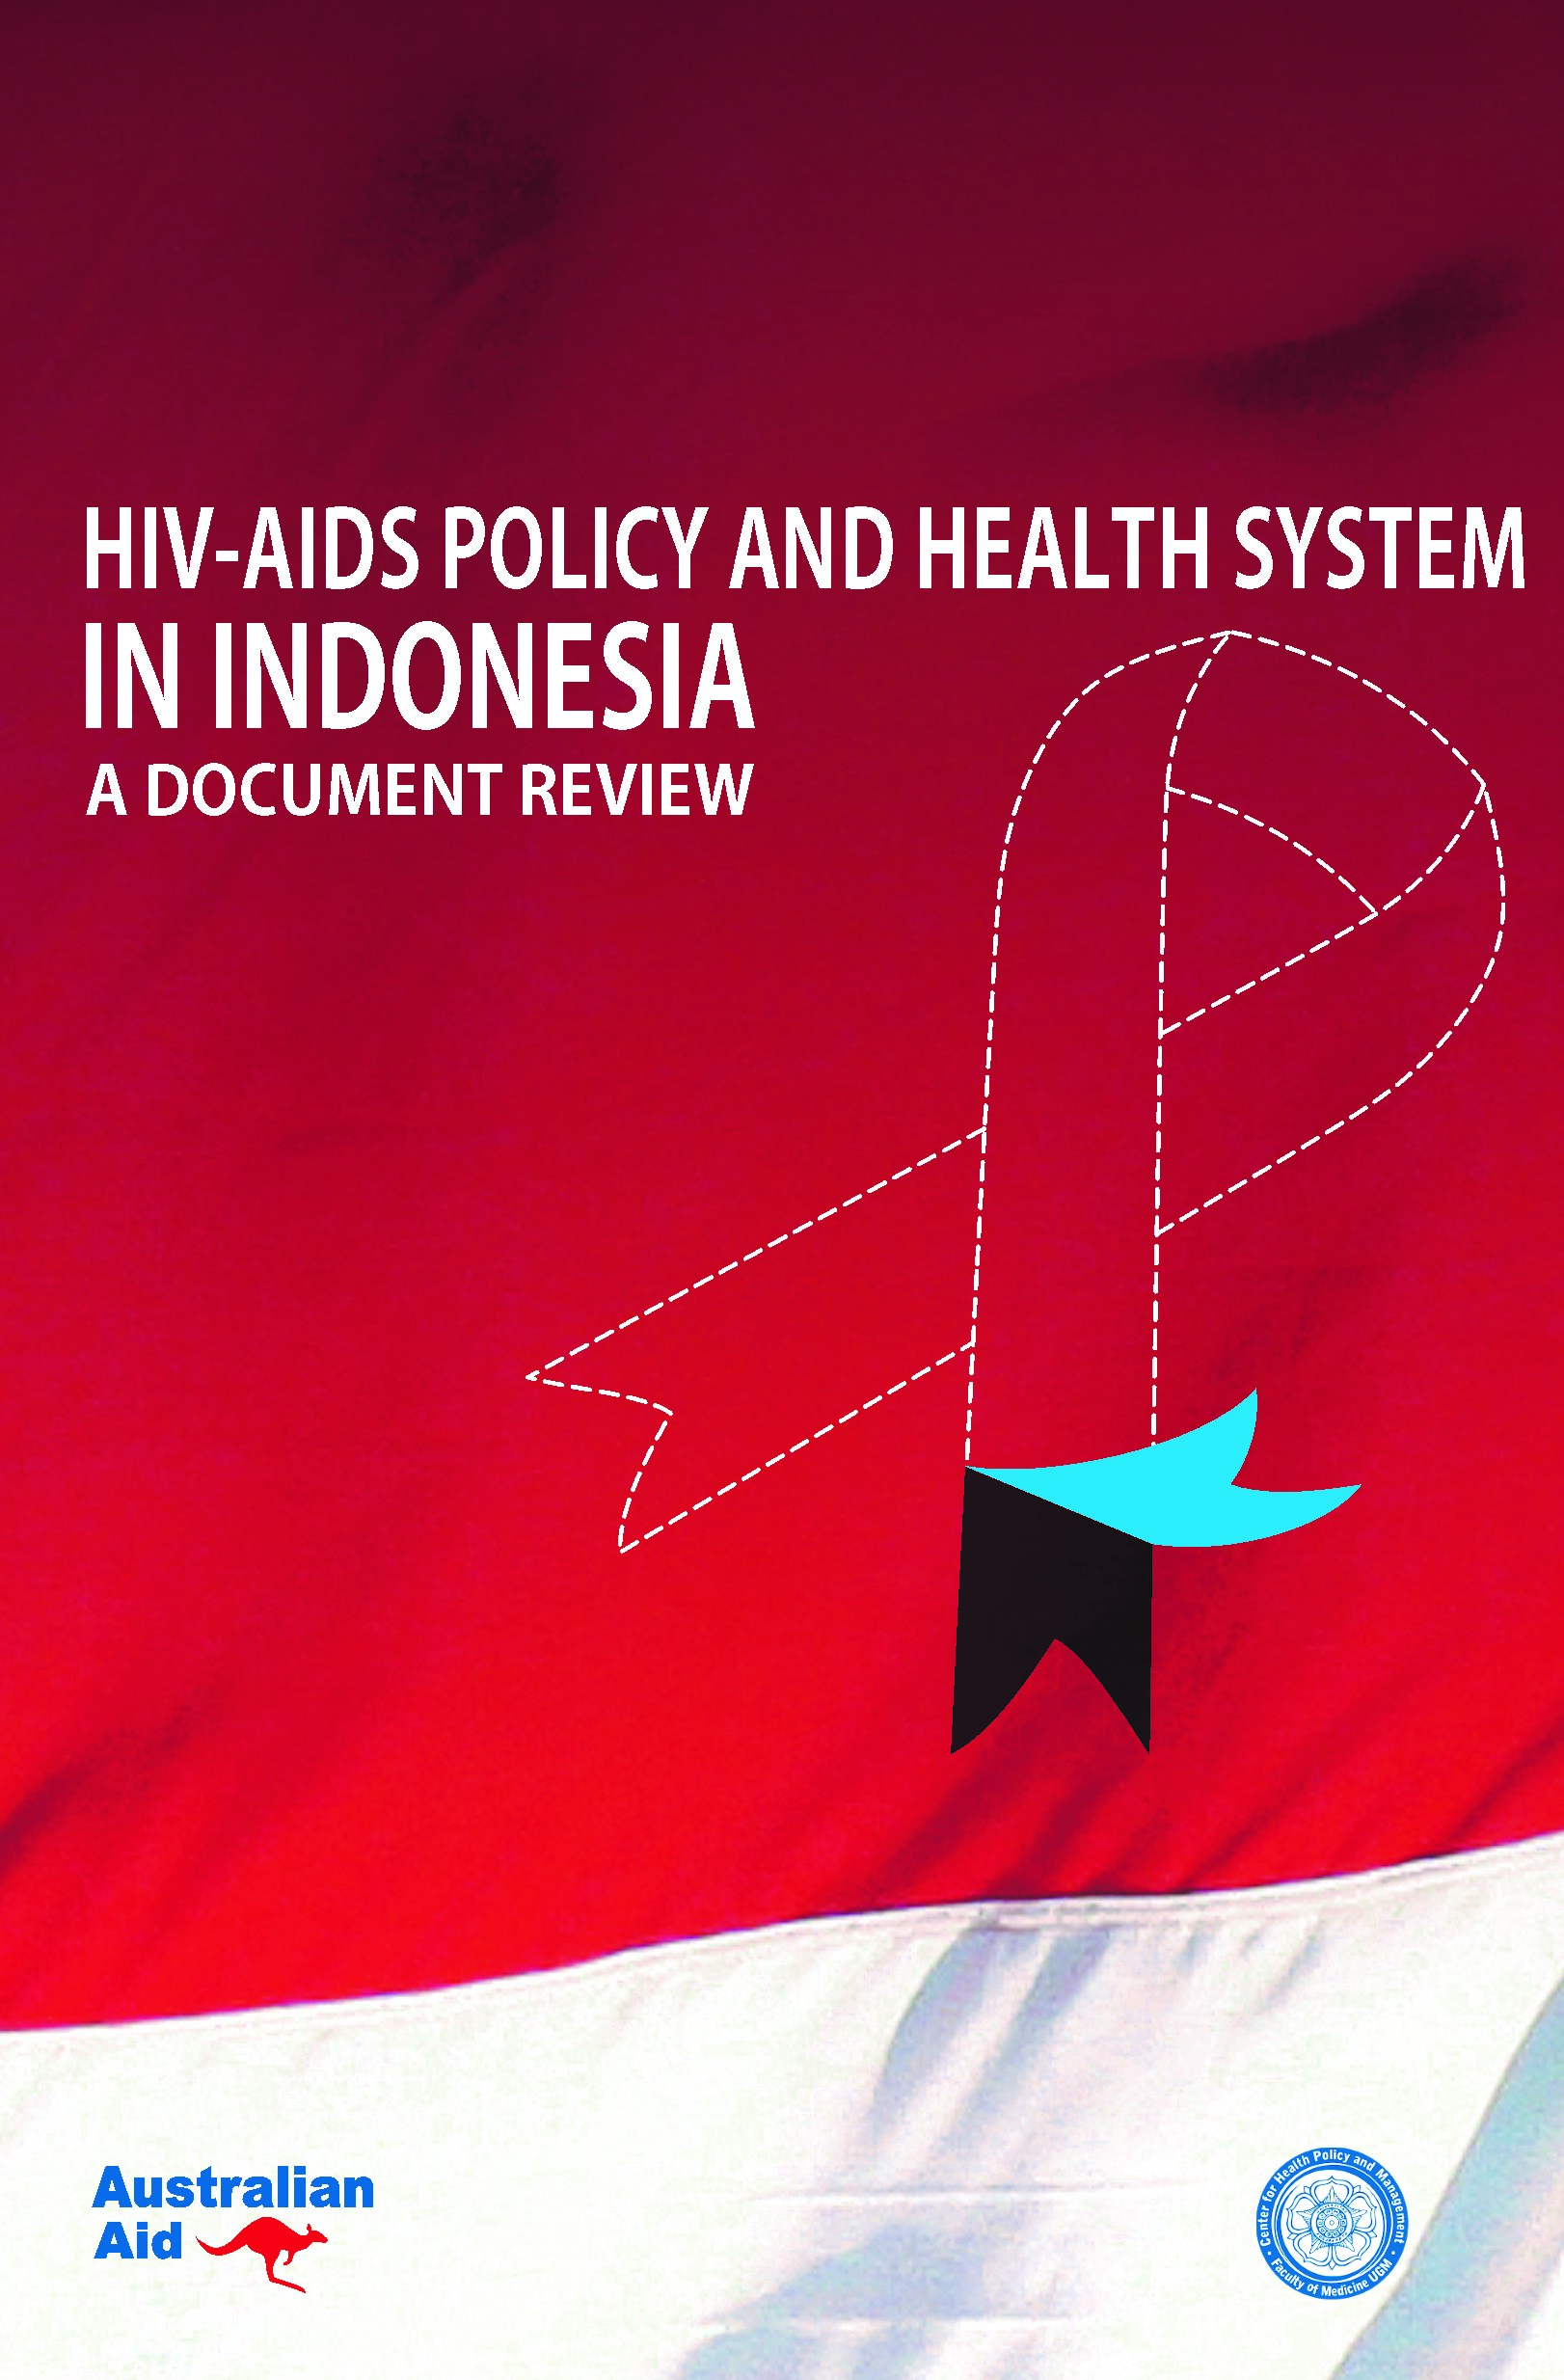 HIV-AIDS policy and health system in Indonesia [sumber elektronis] : a document review